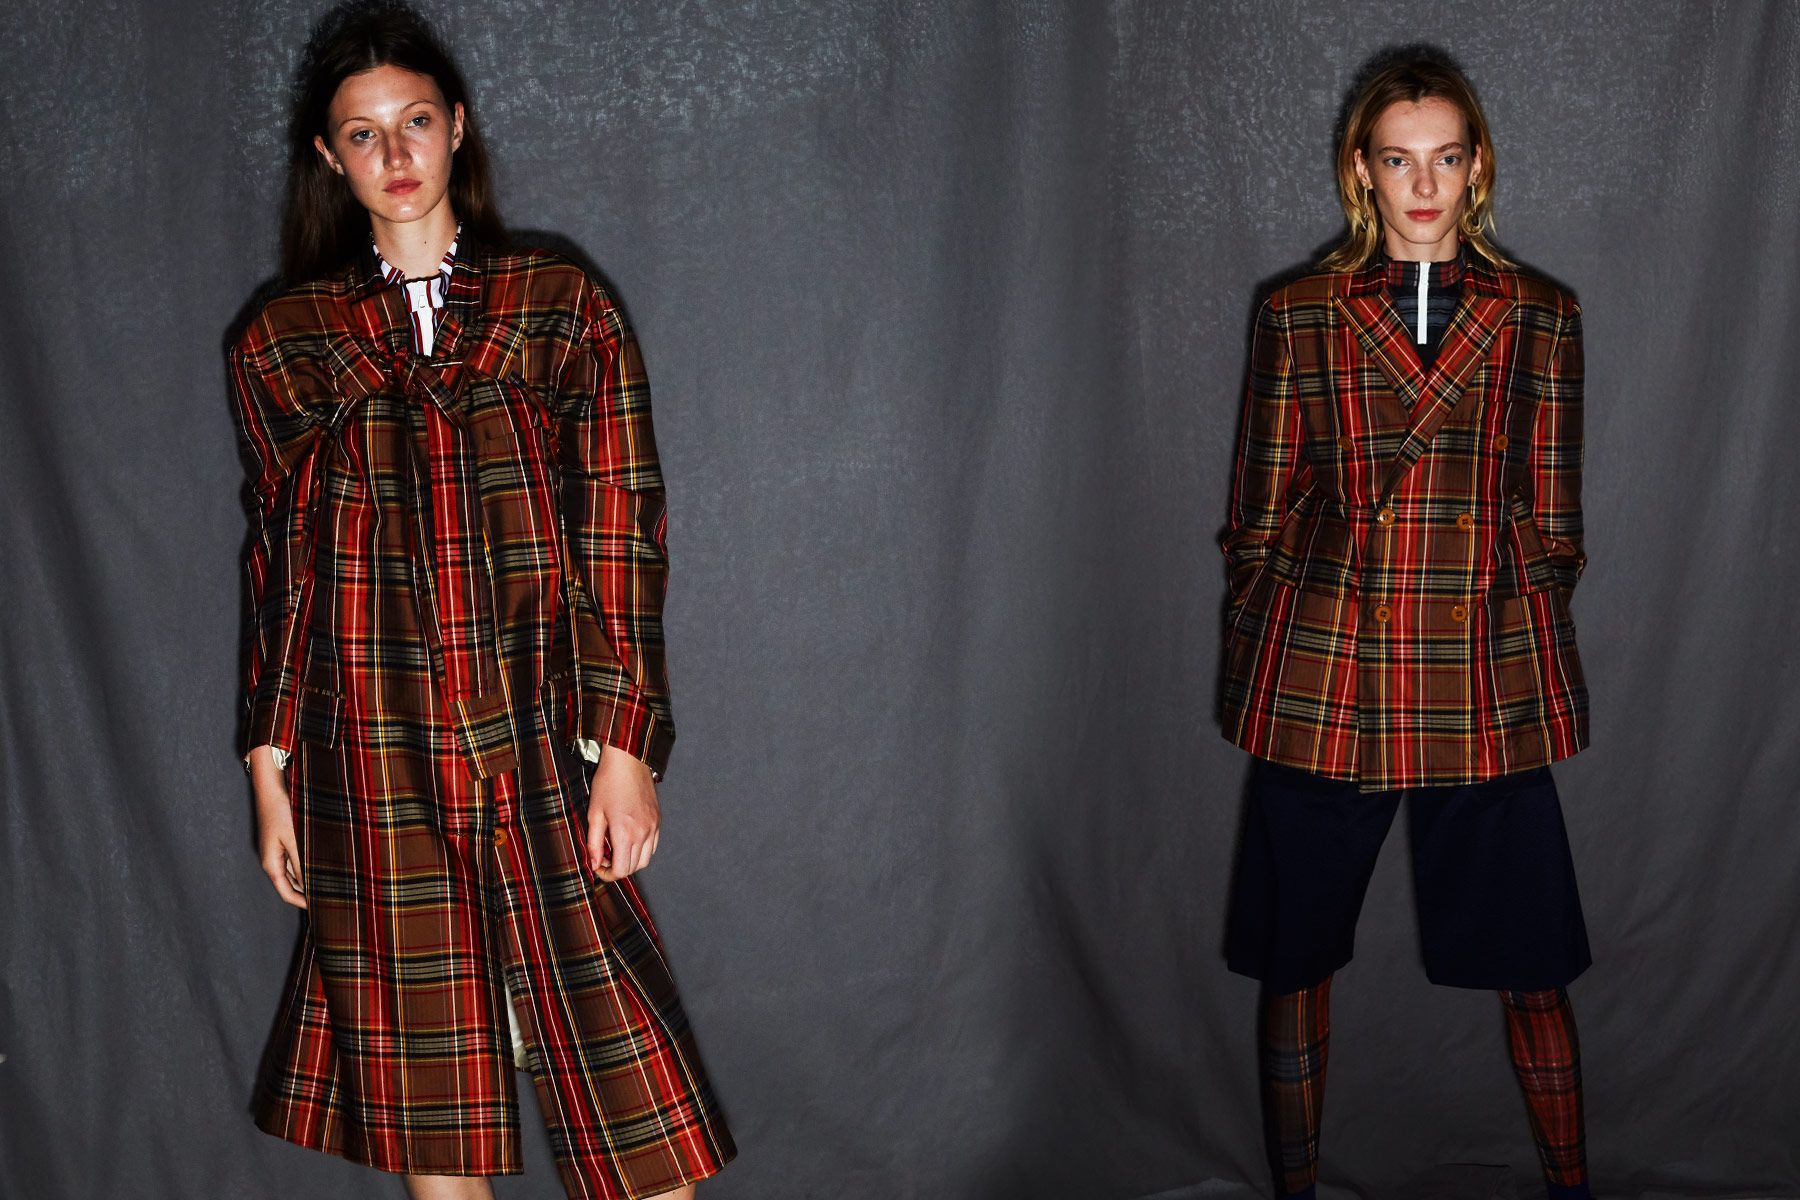 Red plaid looks from the Linder Spring/Summer 2019 collection, photographed by Alexander Thompson for Ponyboy magazine.